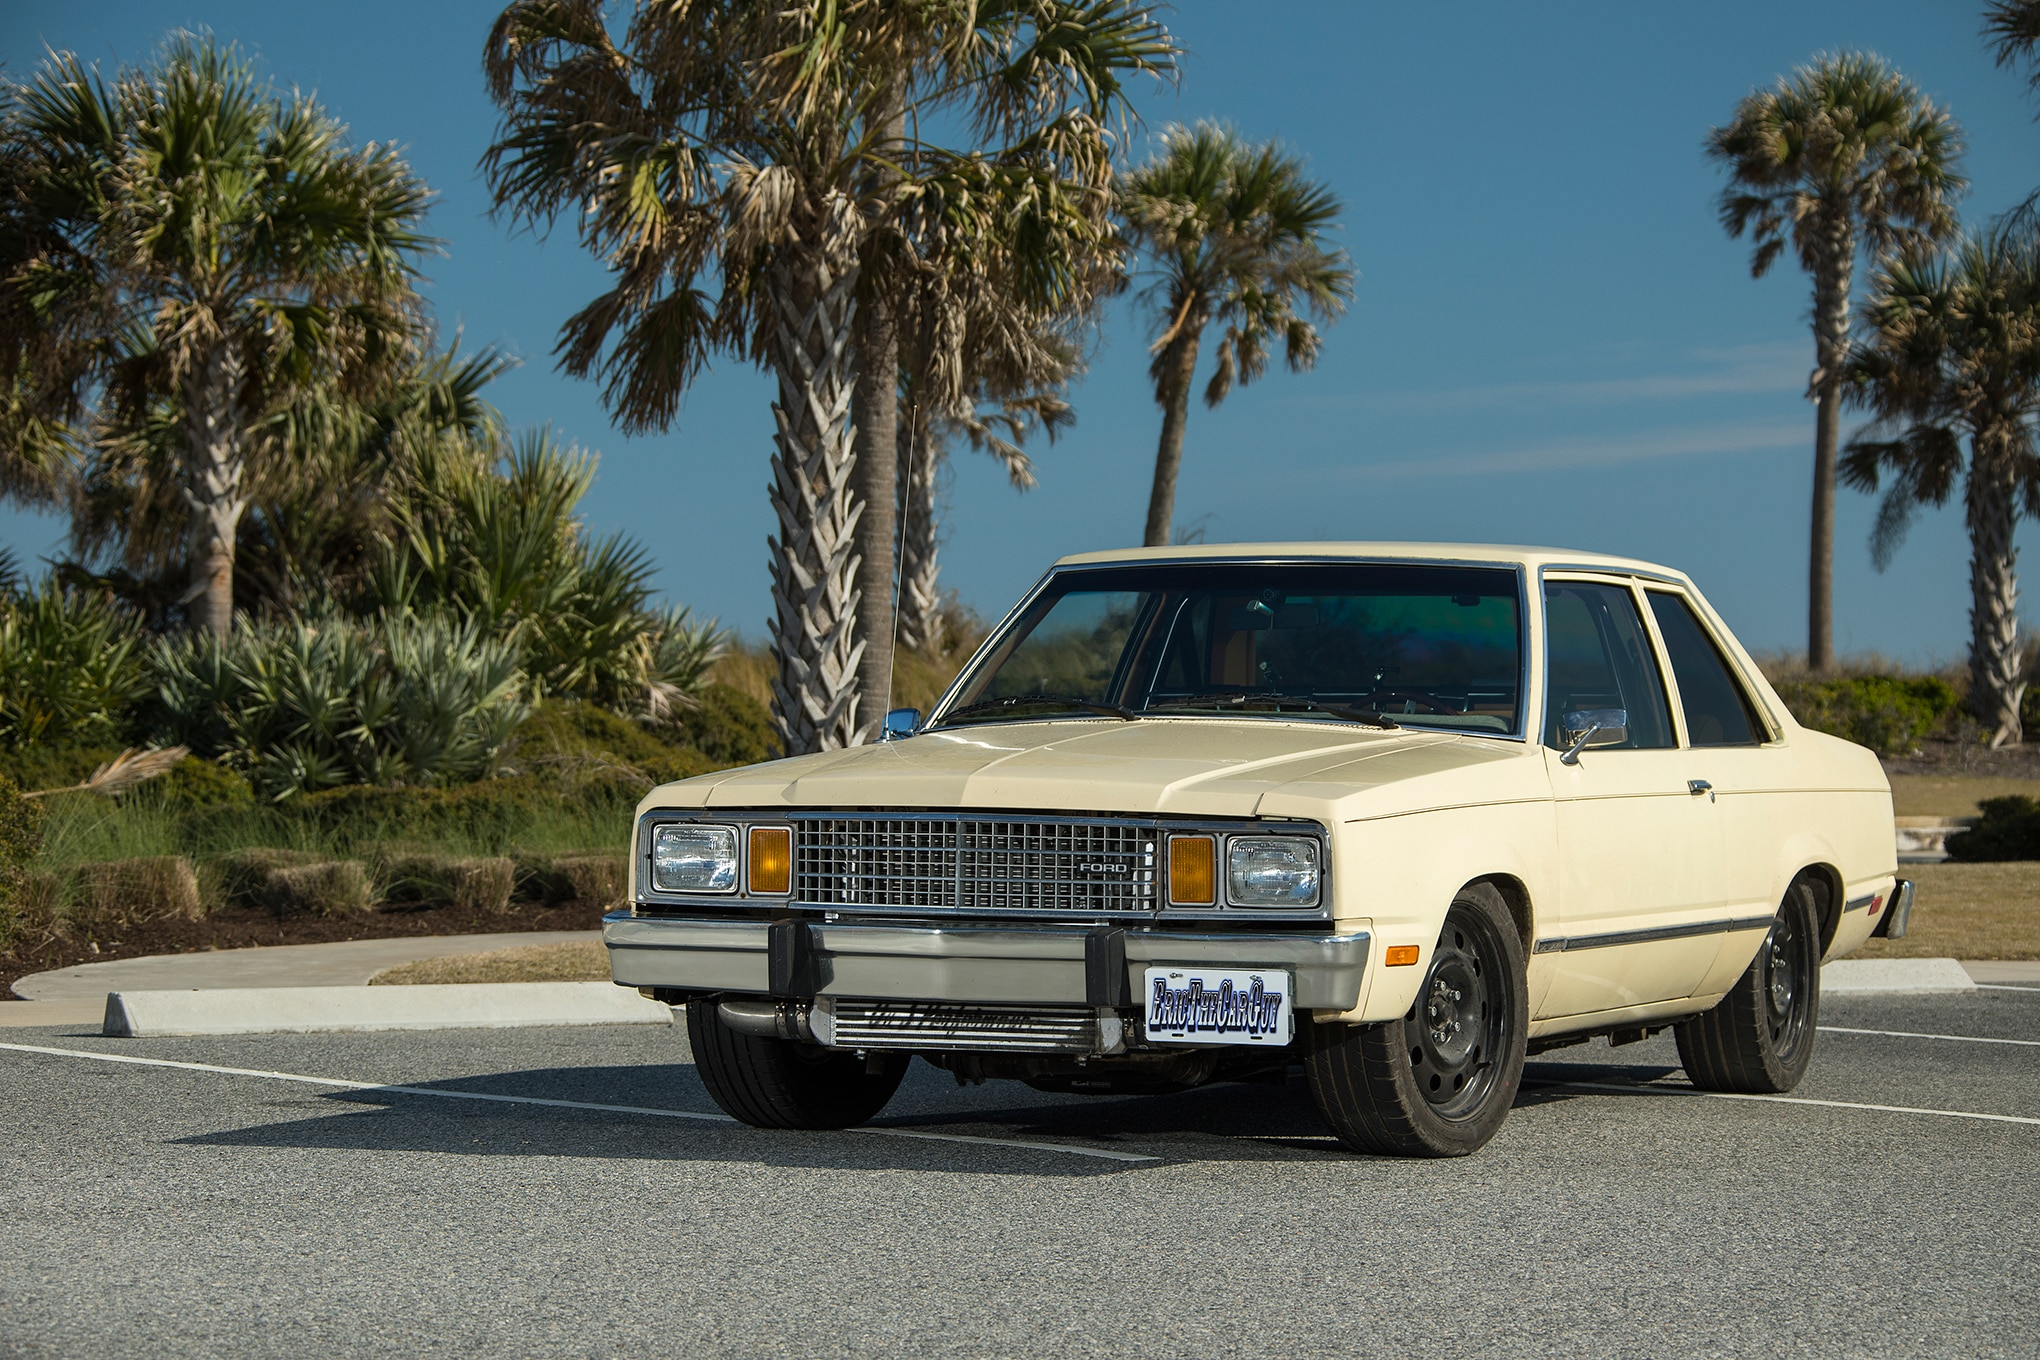 Eric The Car Guy's Turbo Ford Fairmont